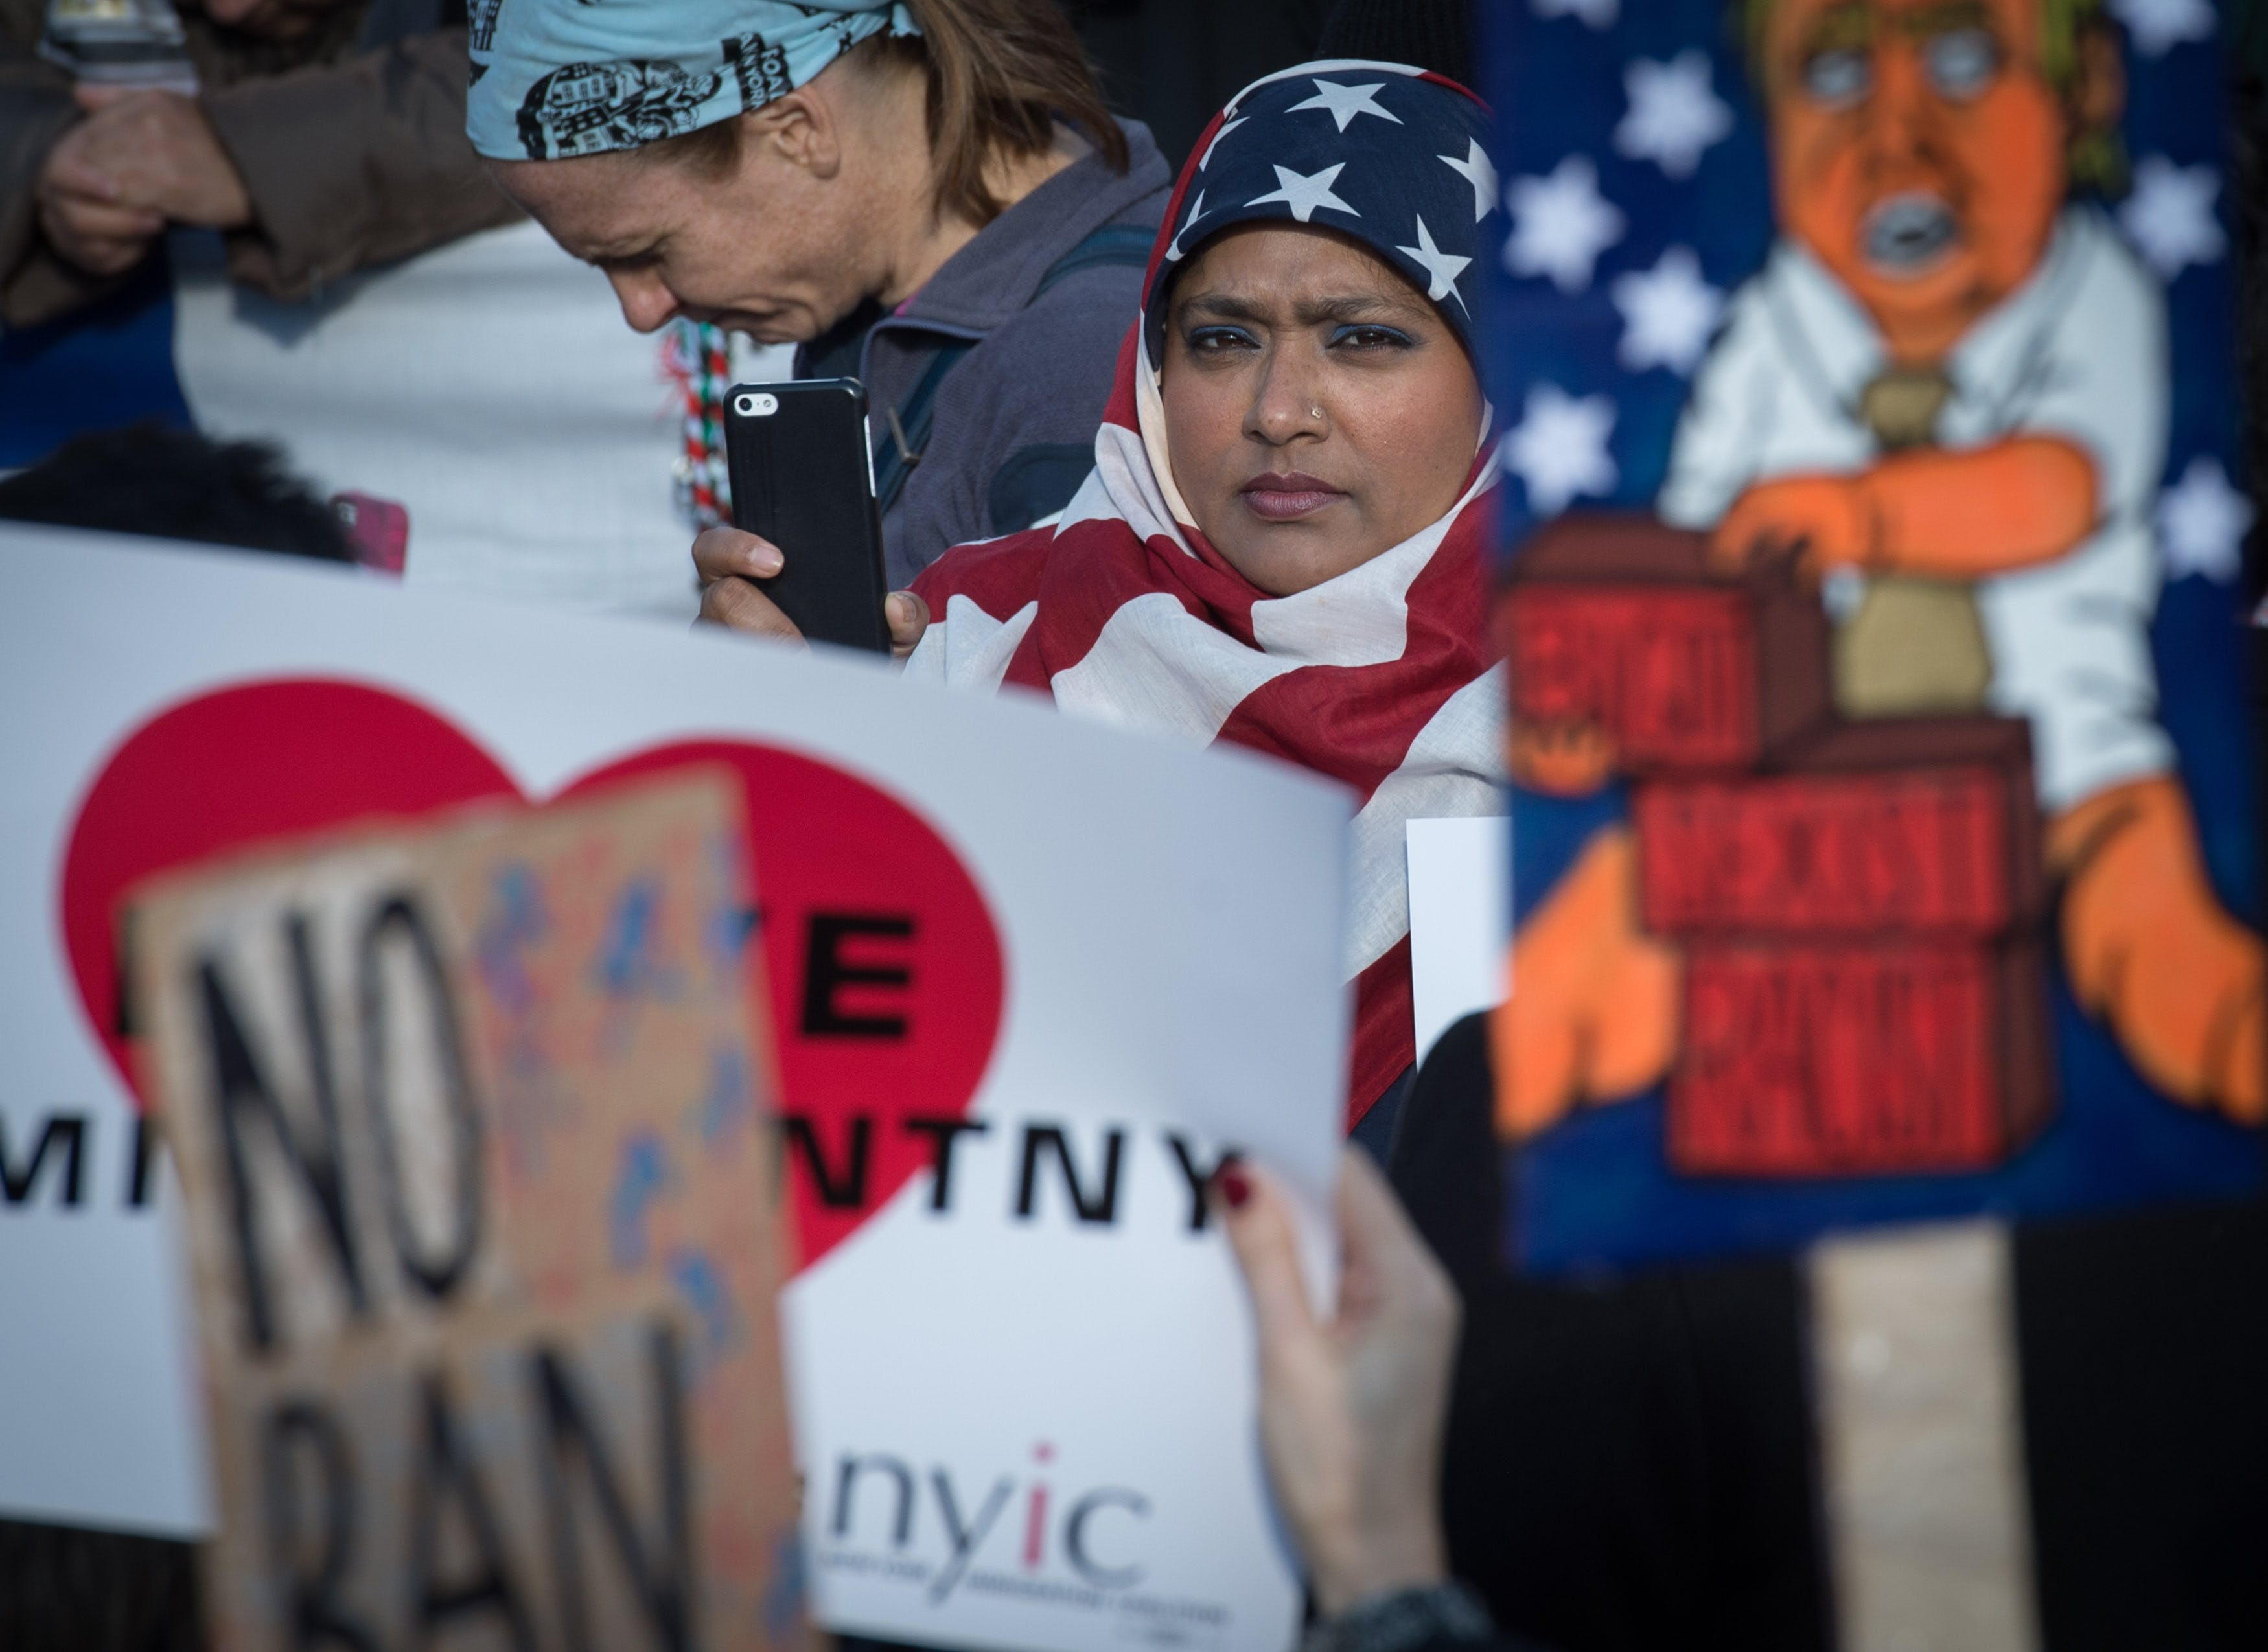 TOPSHOT - Protesters gather in Battery Park and march to the offices of Customs and Border Patrol in Manhattan to protest President Trump's Executive order imposing controls on travelers from Iran, Iraq, Libya, Somalia, Sudan, Syria and Yemen, January 29, 2017 in New York. / AFP / Bryan R. Smith        (Photo credit should read BRYAN R. SMITH/AFP/Getty Images)